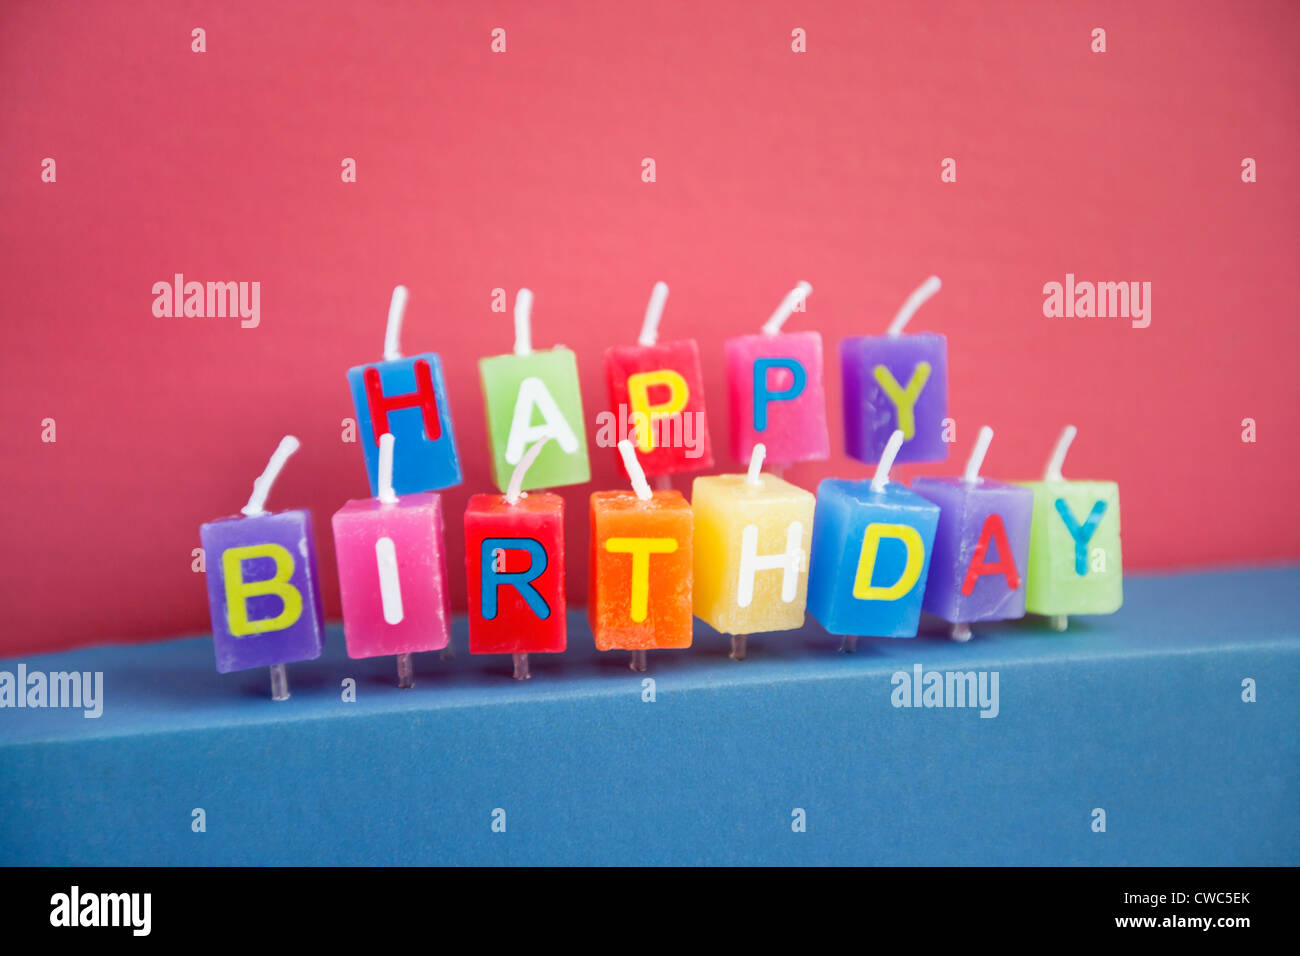 Unlit birthday candles over colored background - Stock Image